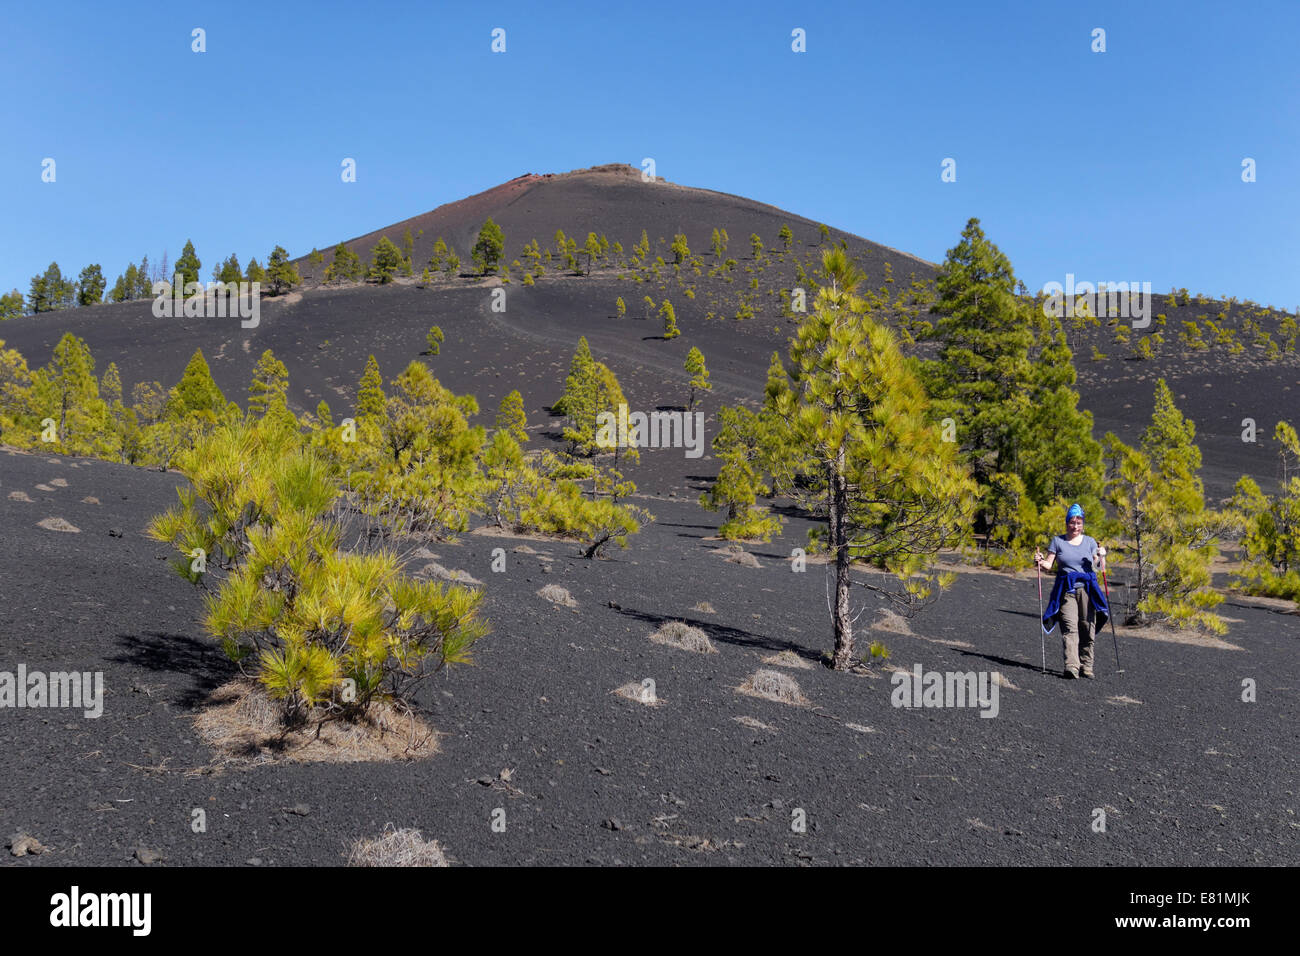 San Martín volcano, Cumbre Vieja in Fuencaliente, La Palma, Canary Islands, Spain - Stock Image